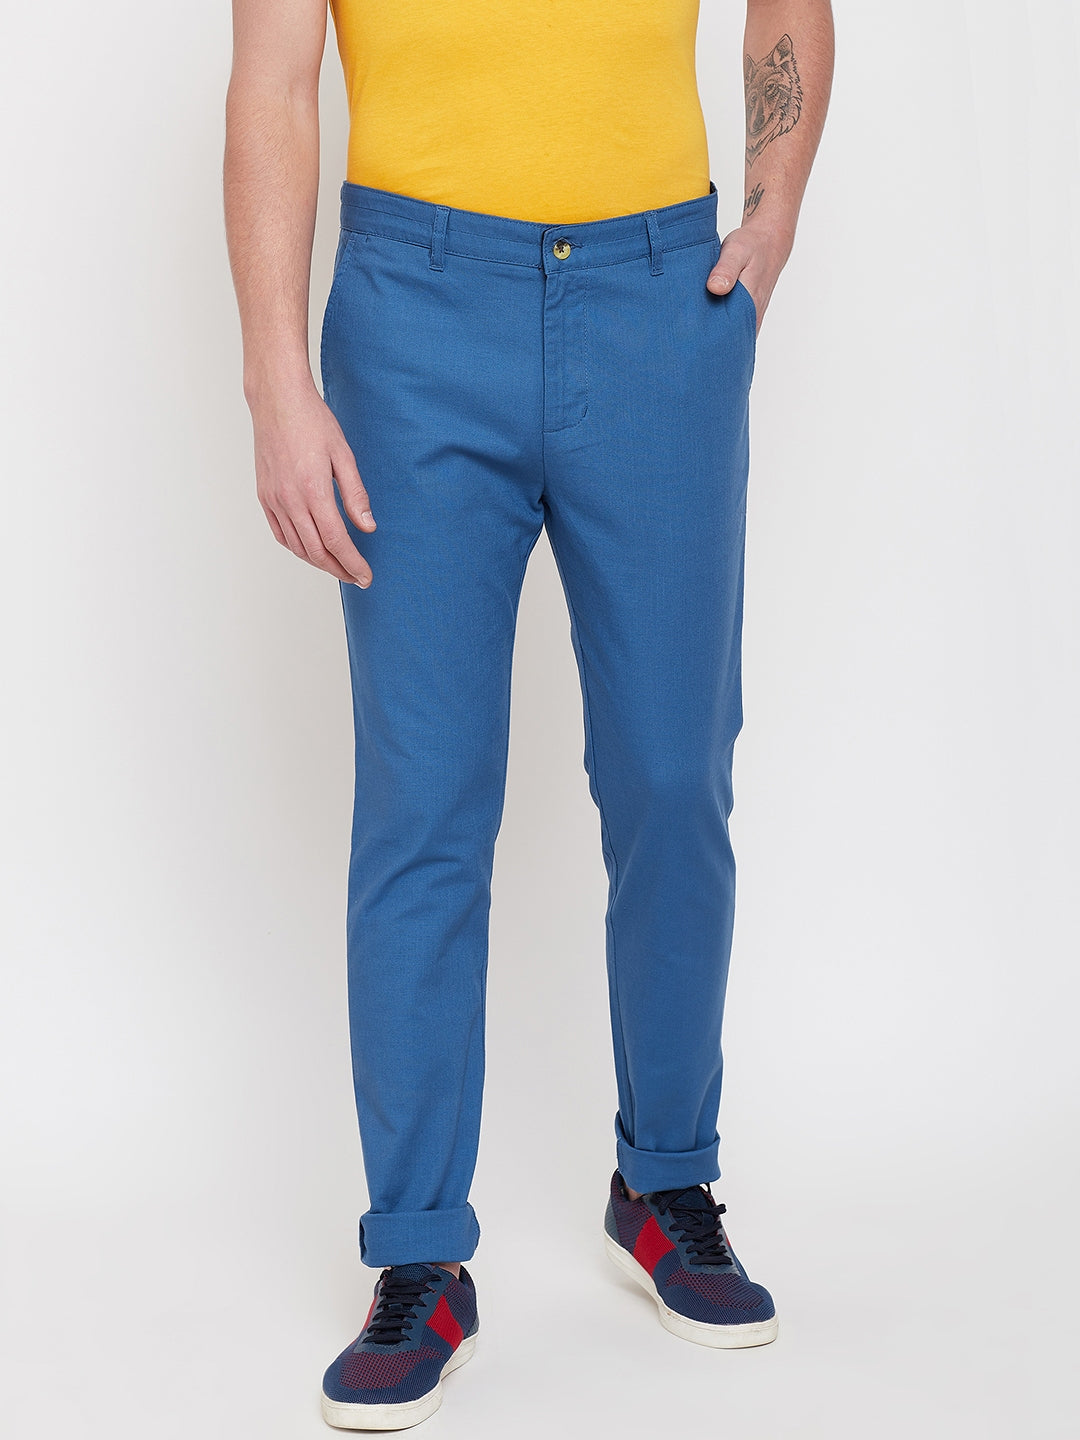 JUMP USA Men Blue Casual Slim Fit Trousers - JUMP USA